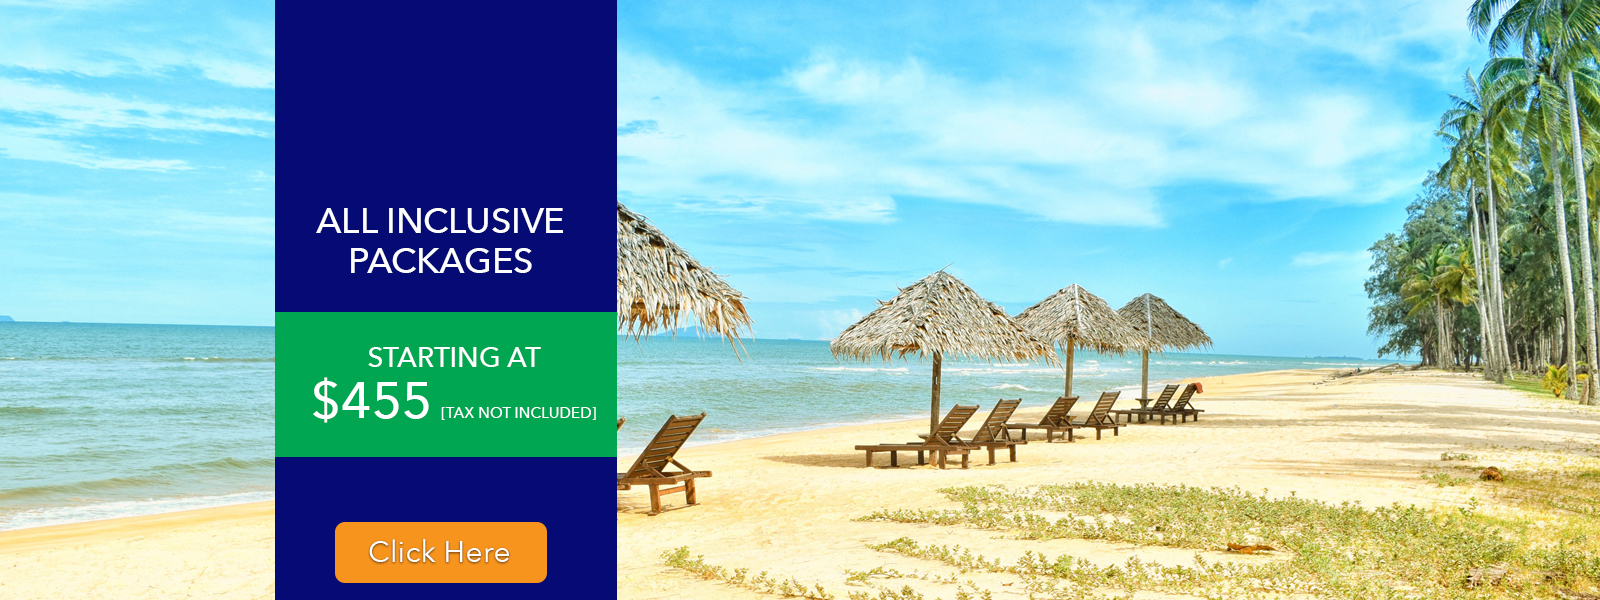 Local Travel Agency Airfare All Inclusive Packages